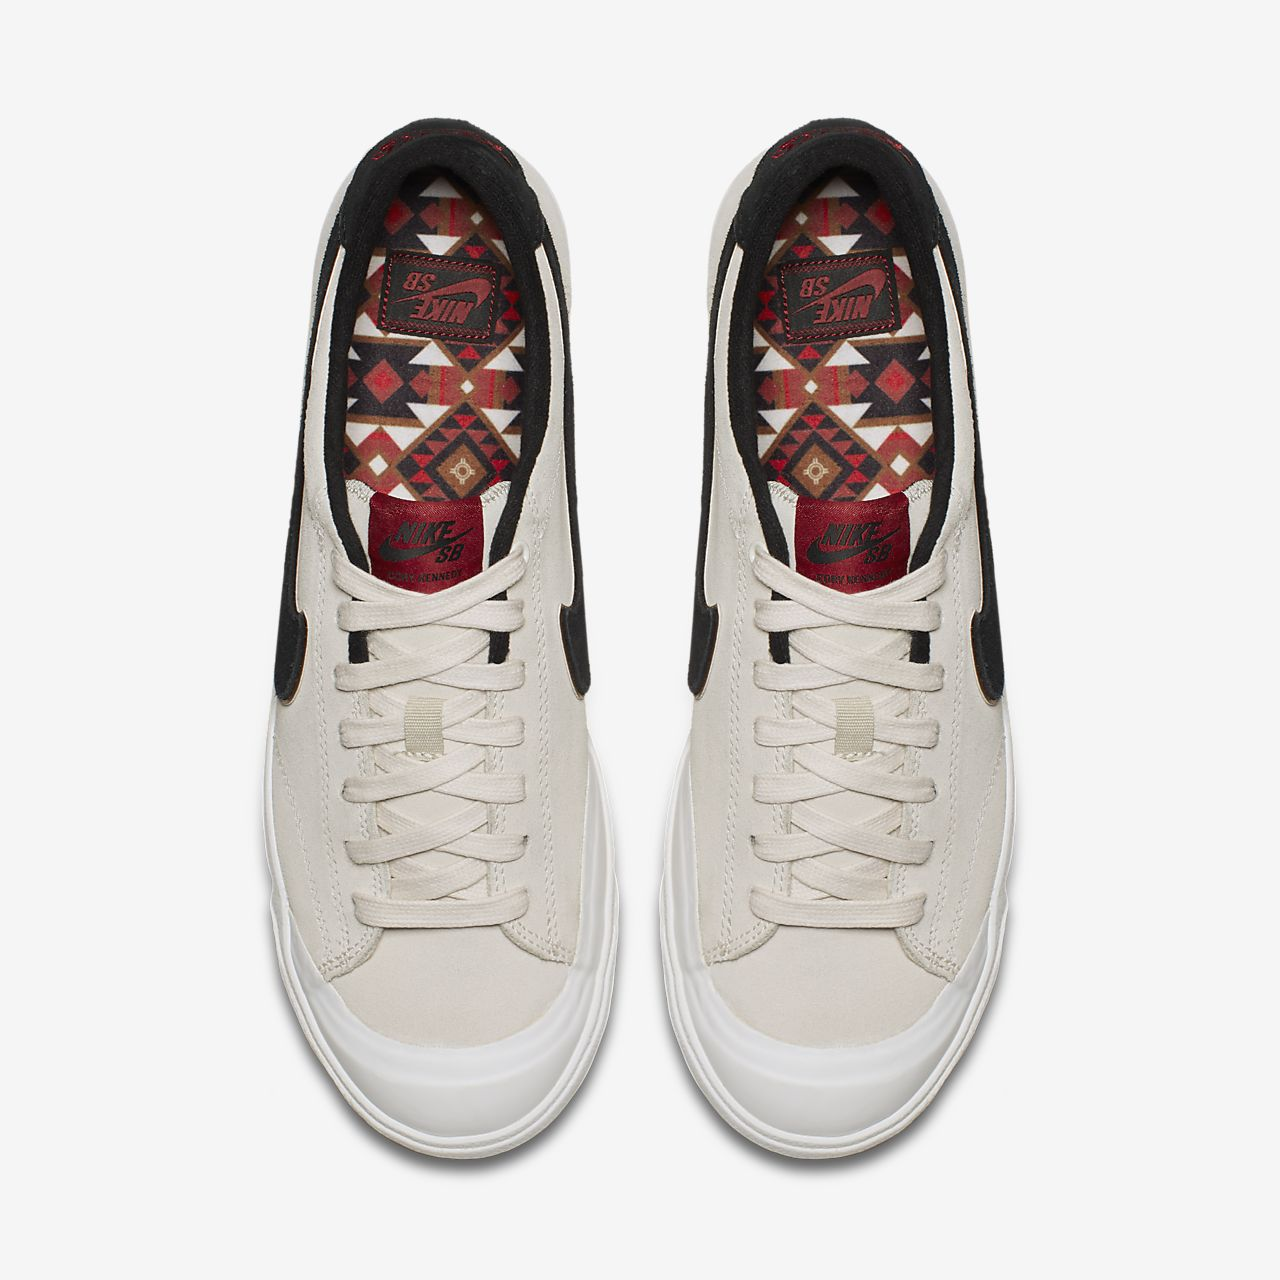 low priced a8646 74206 ... Nike SB Zoom All Court CK Men s Skateboarding Shoe